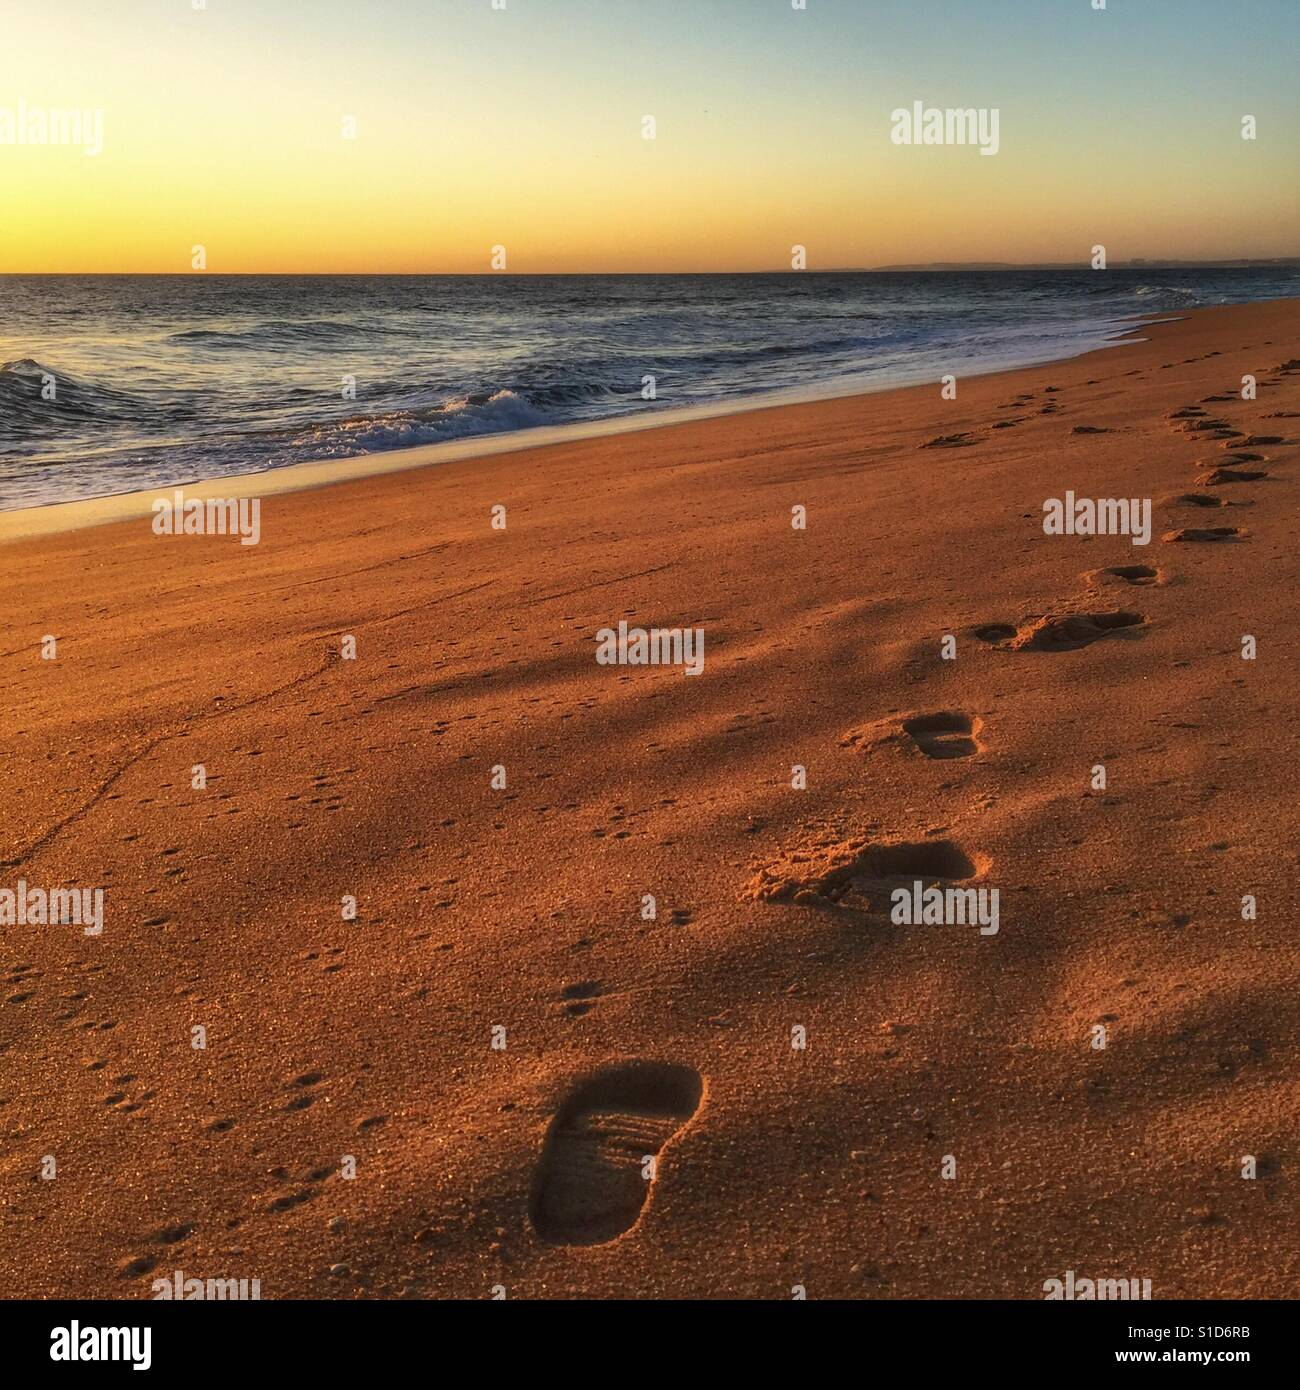 Sunset on a beach in Portugal with foot prints in the sand leading of in to the horizon. Stock Foto